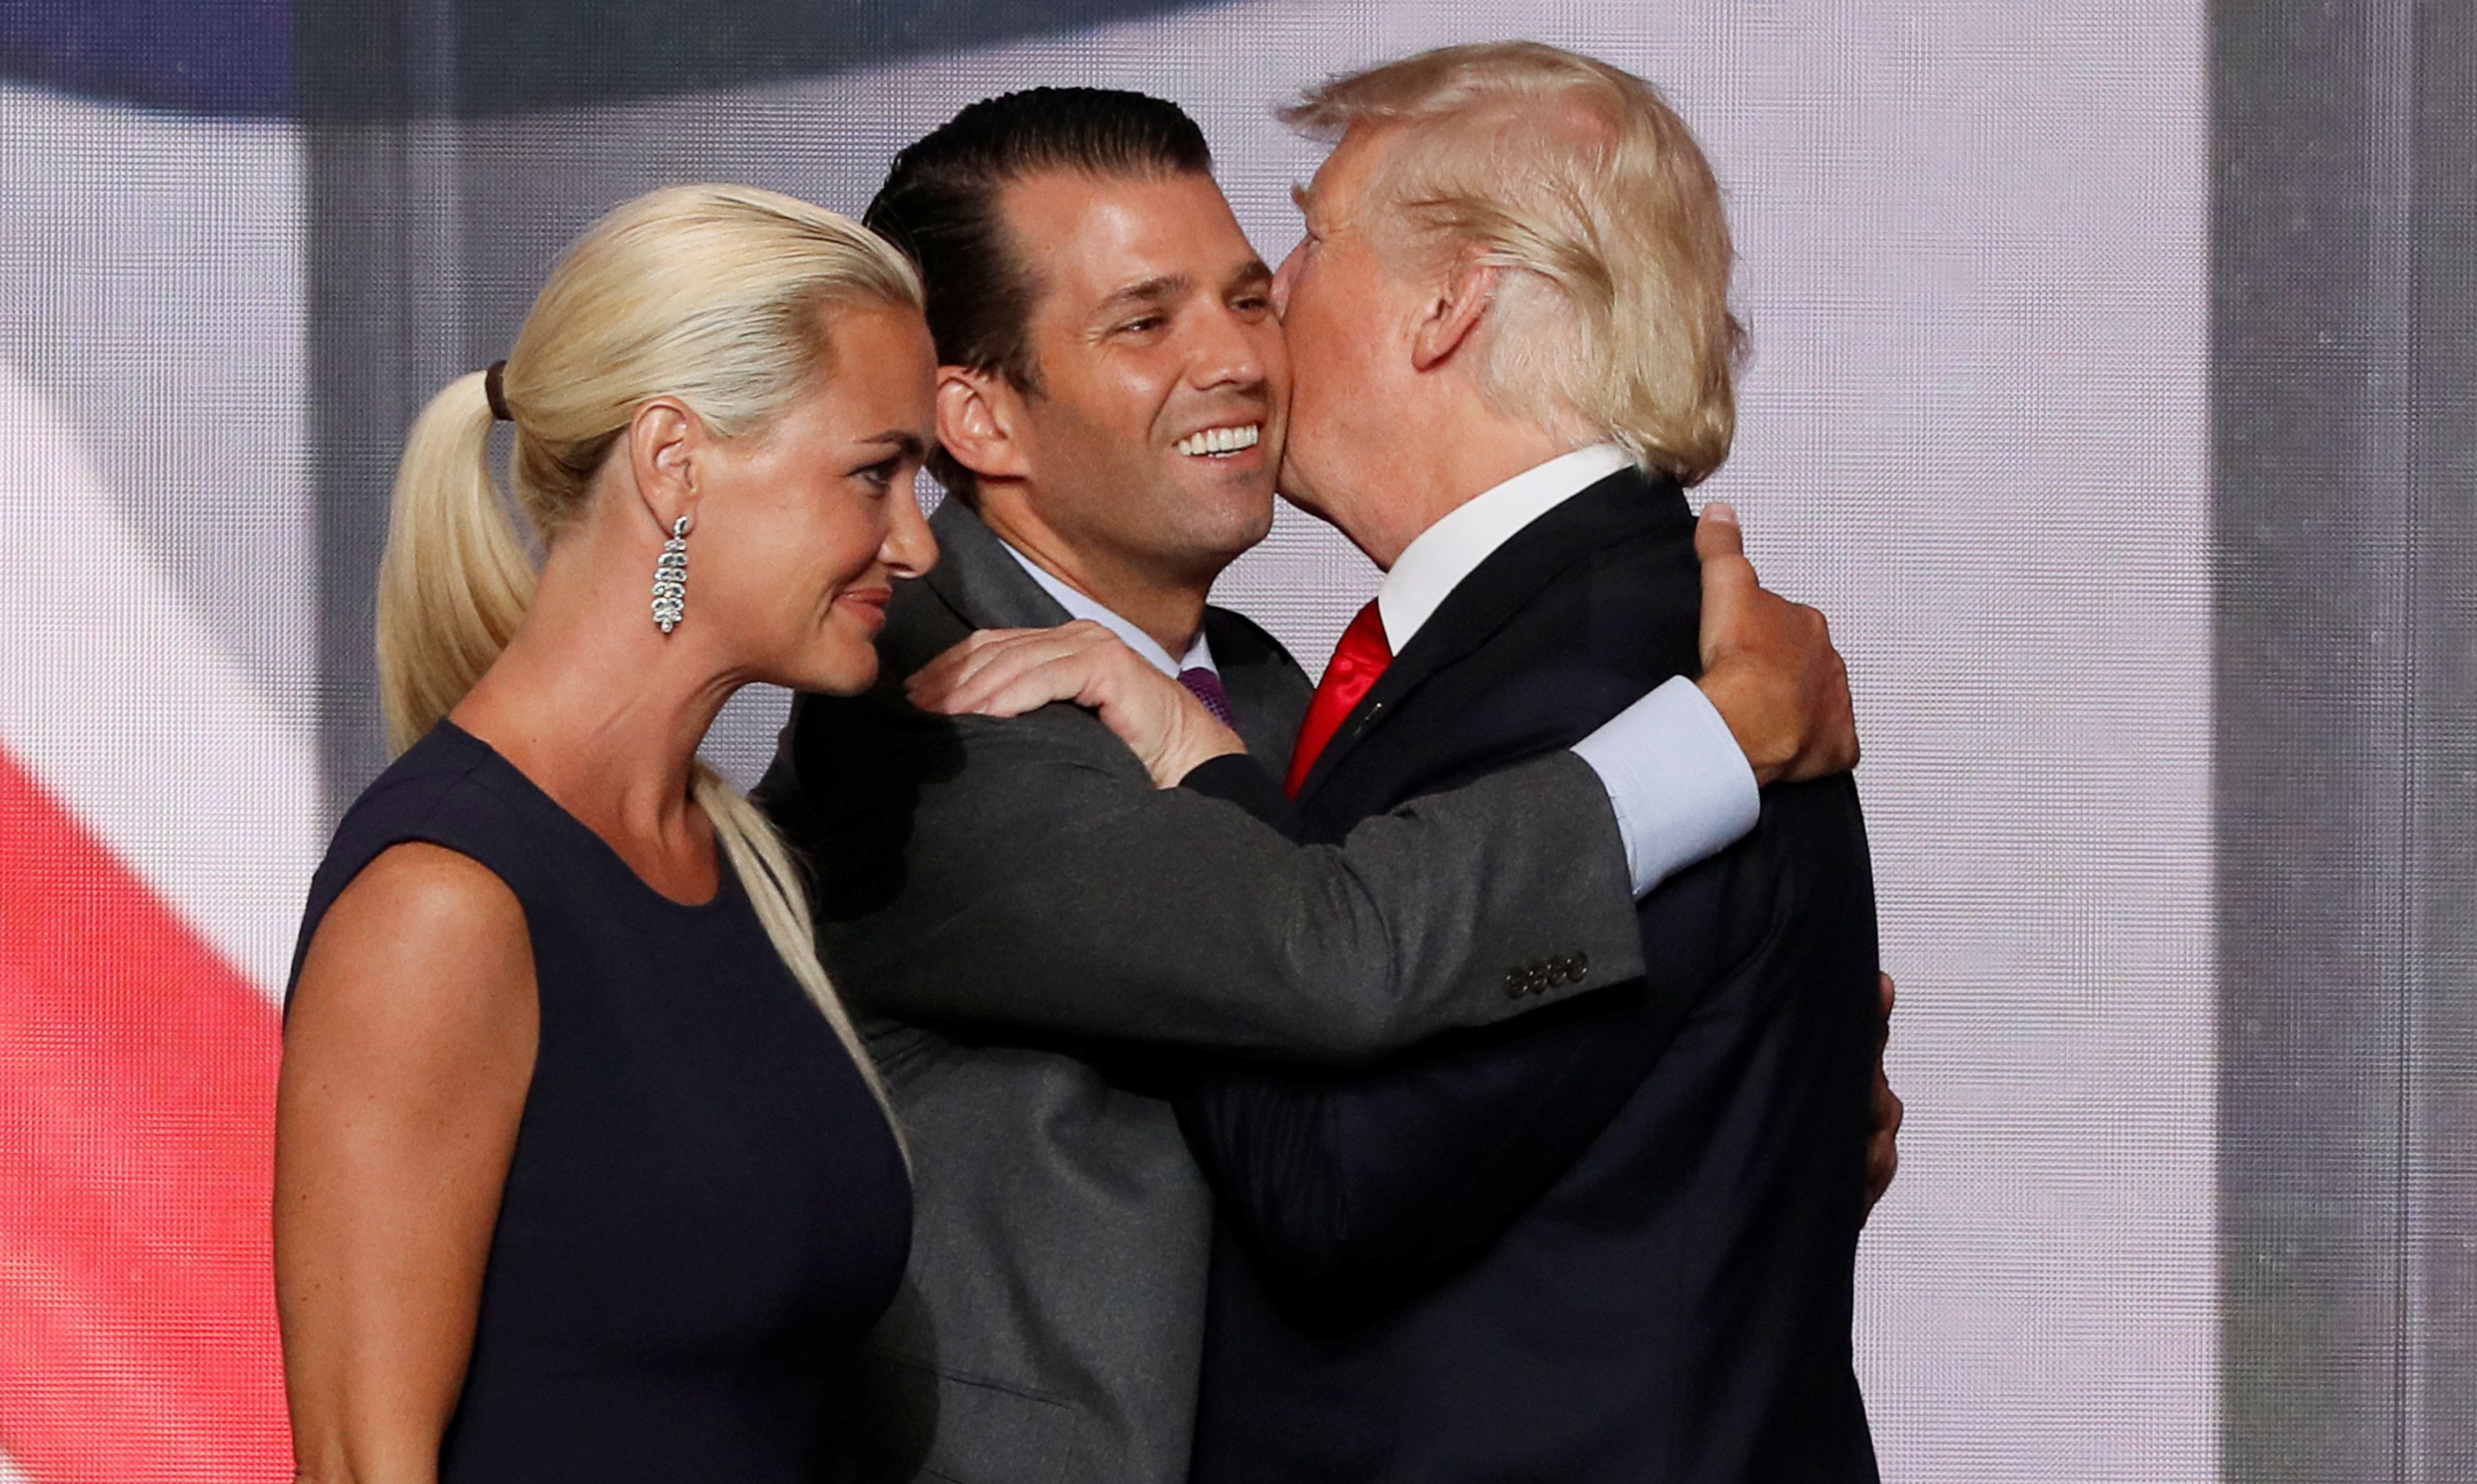 It'd Be Easy For Trump To Pardon His Family Members. He Could Even Tweet